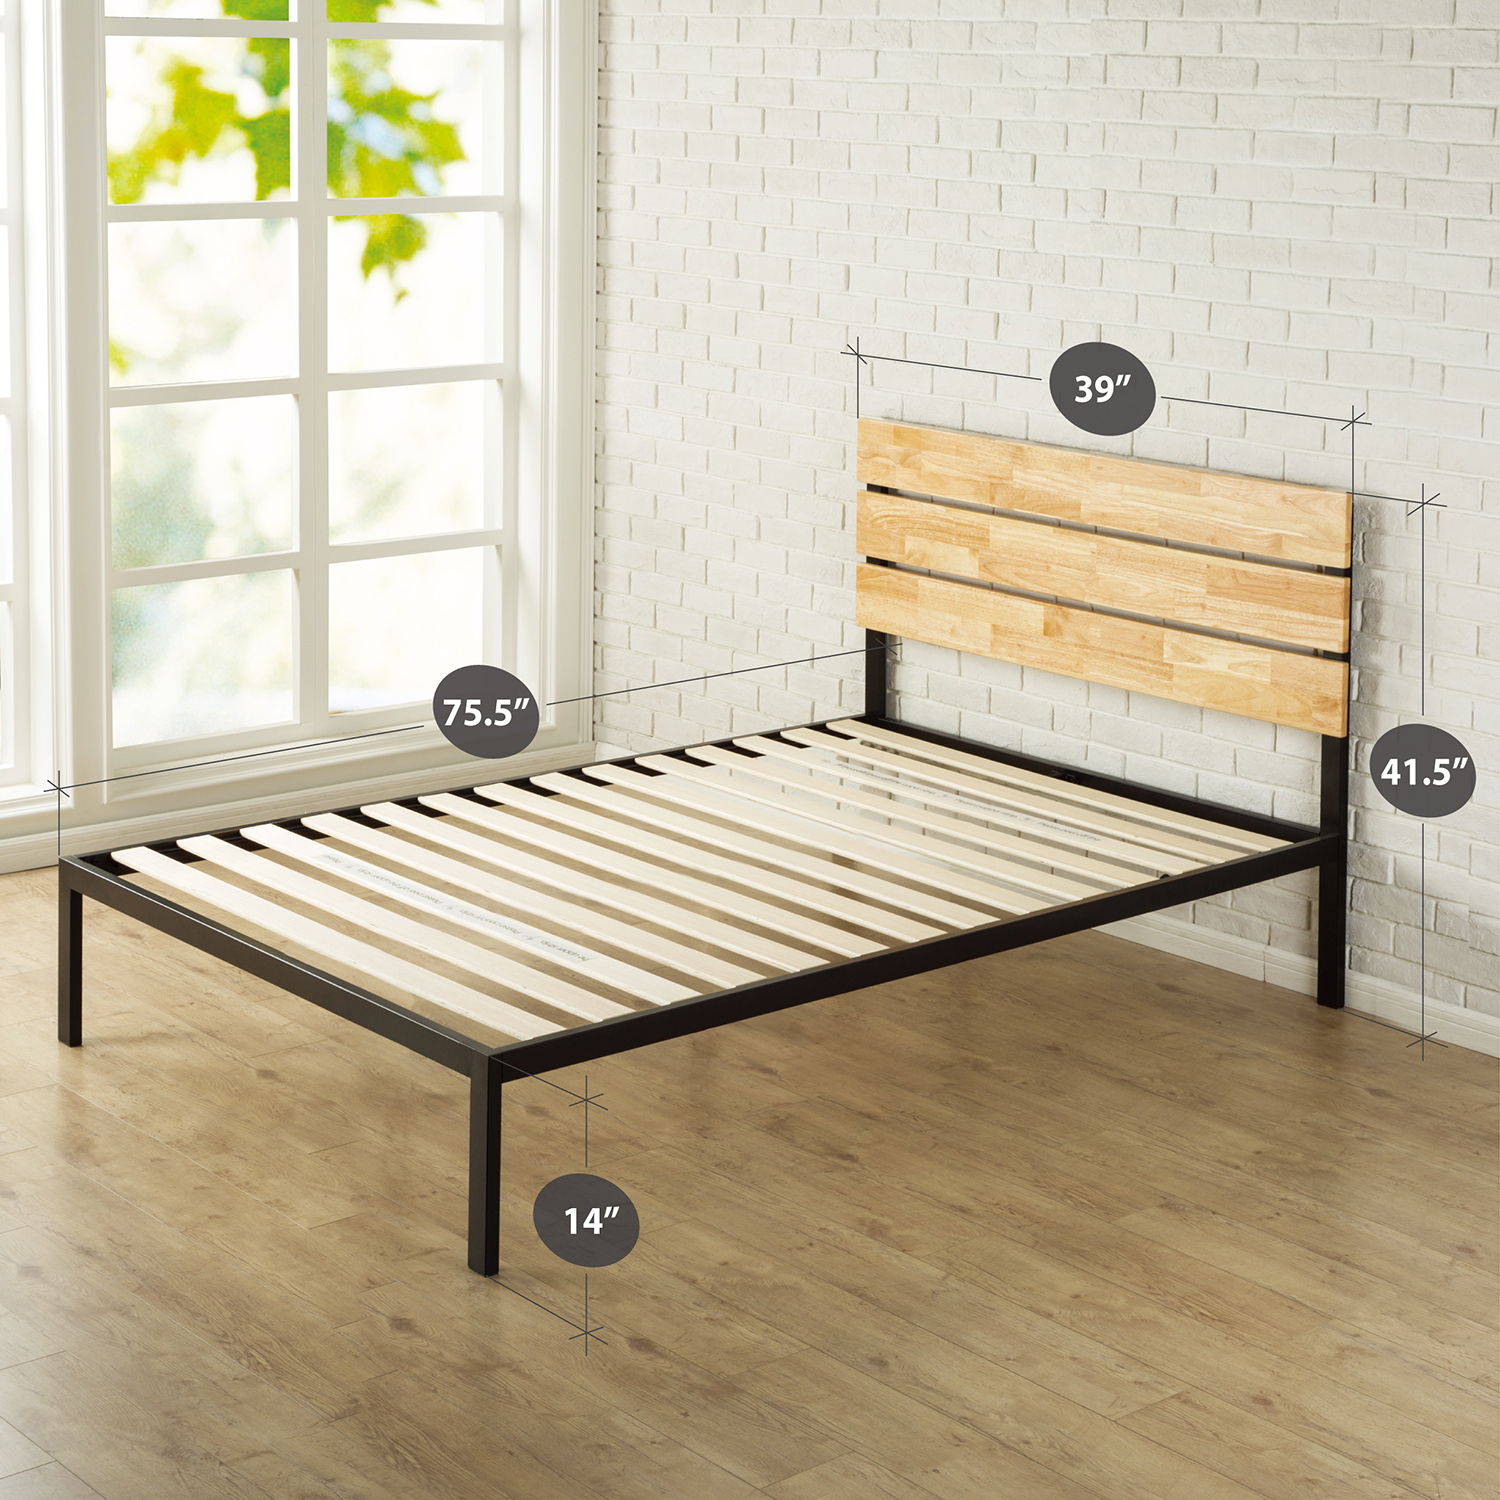 Zinus Paul Queen Double King Single Bed Frame Pine